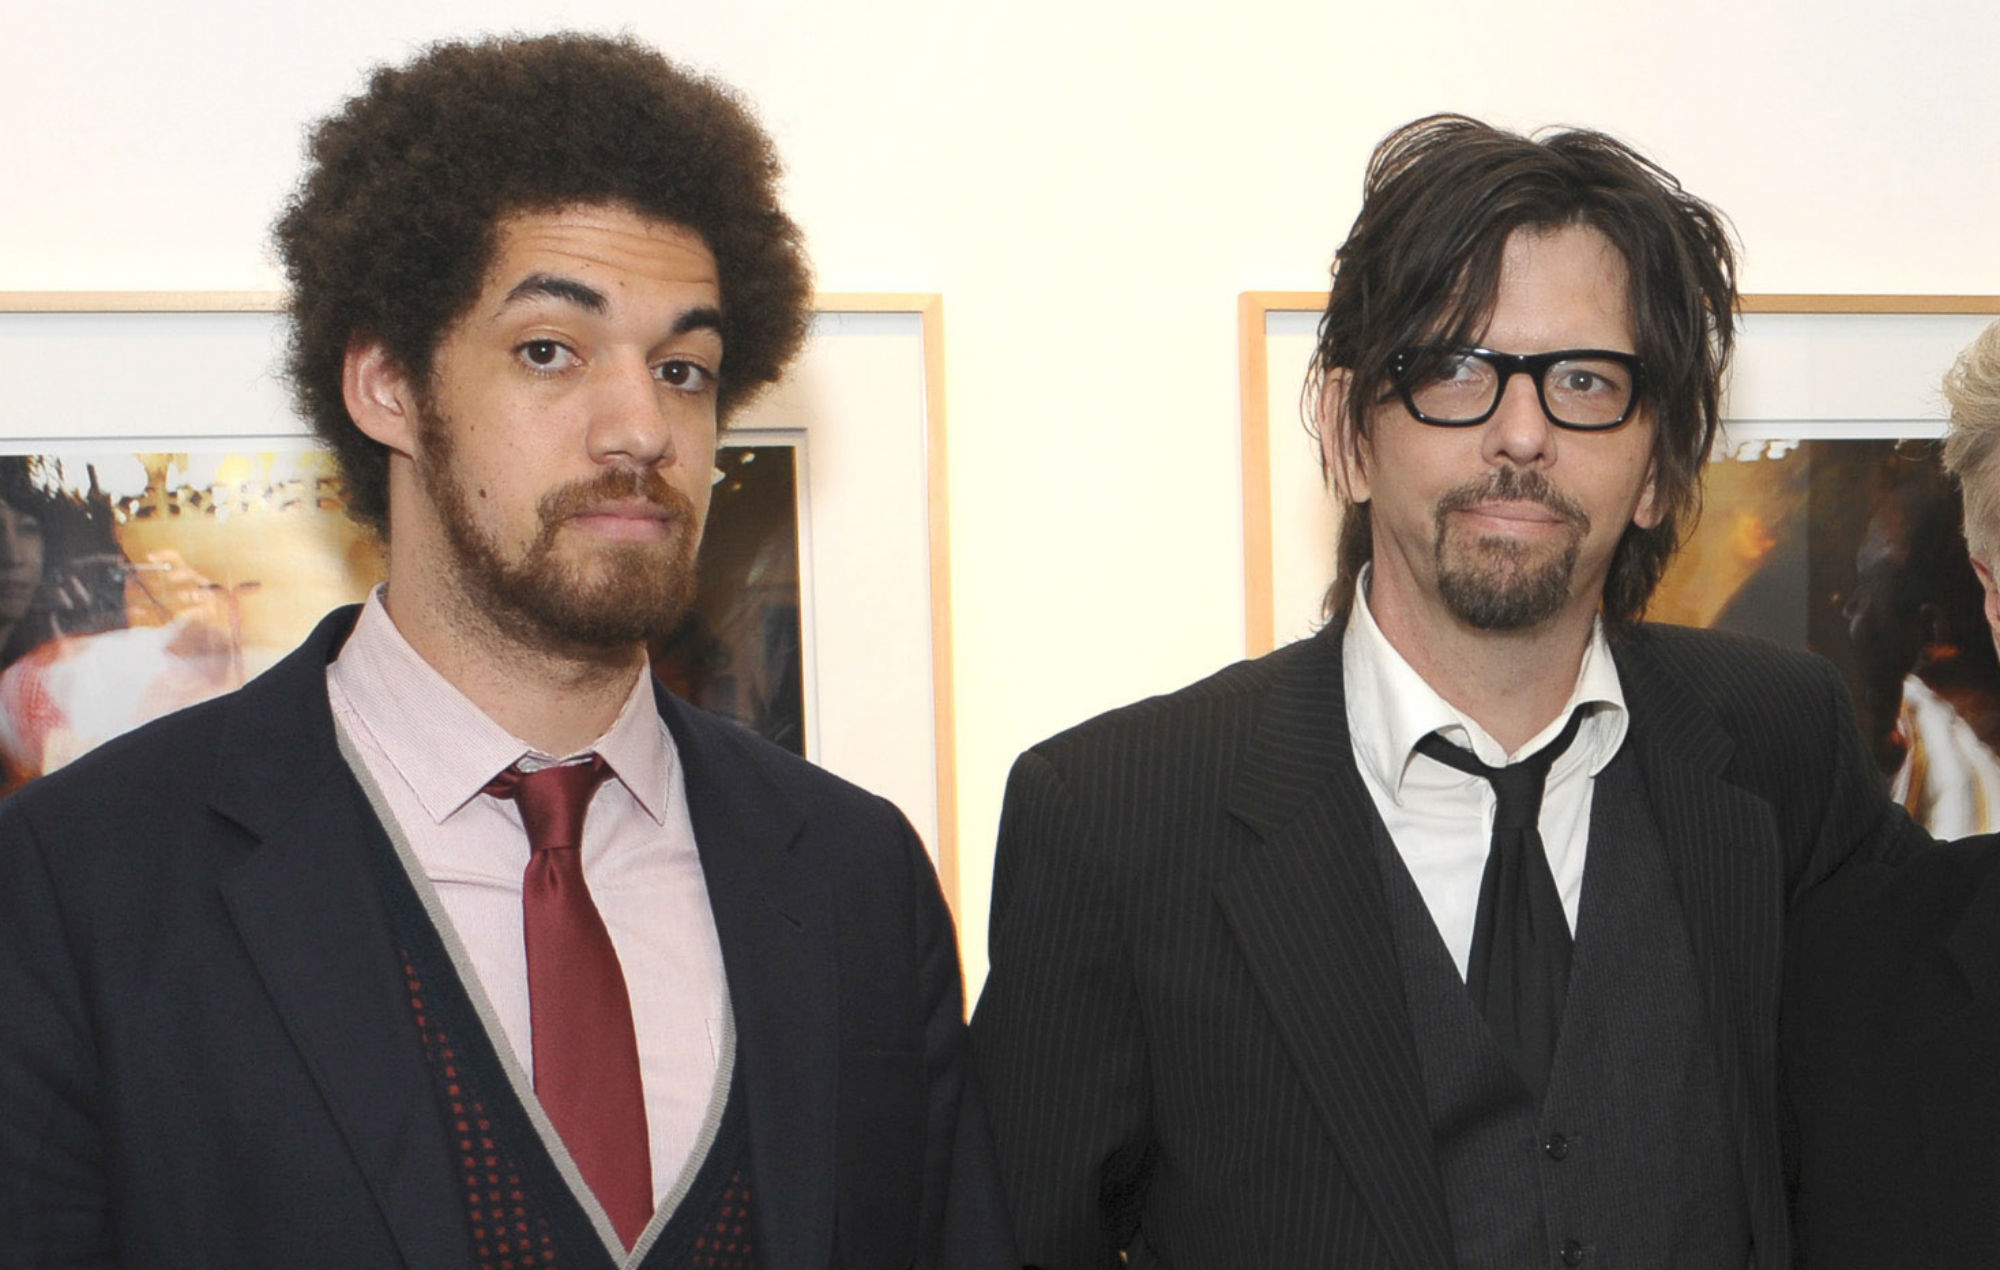 Listen to a previously unreleased track from Danger Mouse and Sparklehorse's Mark Linkous